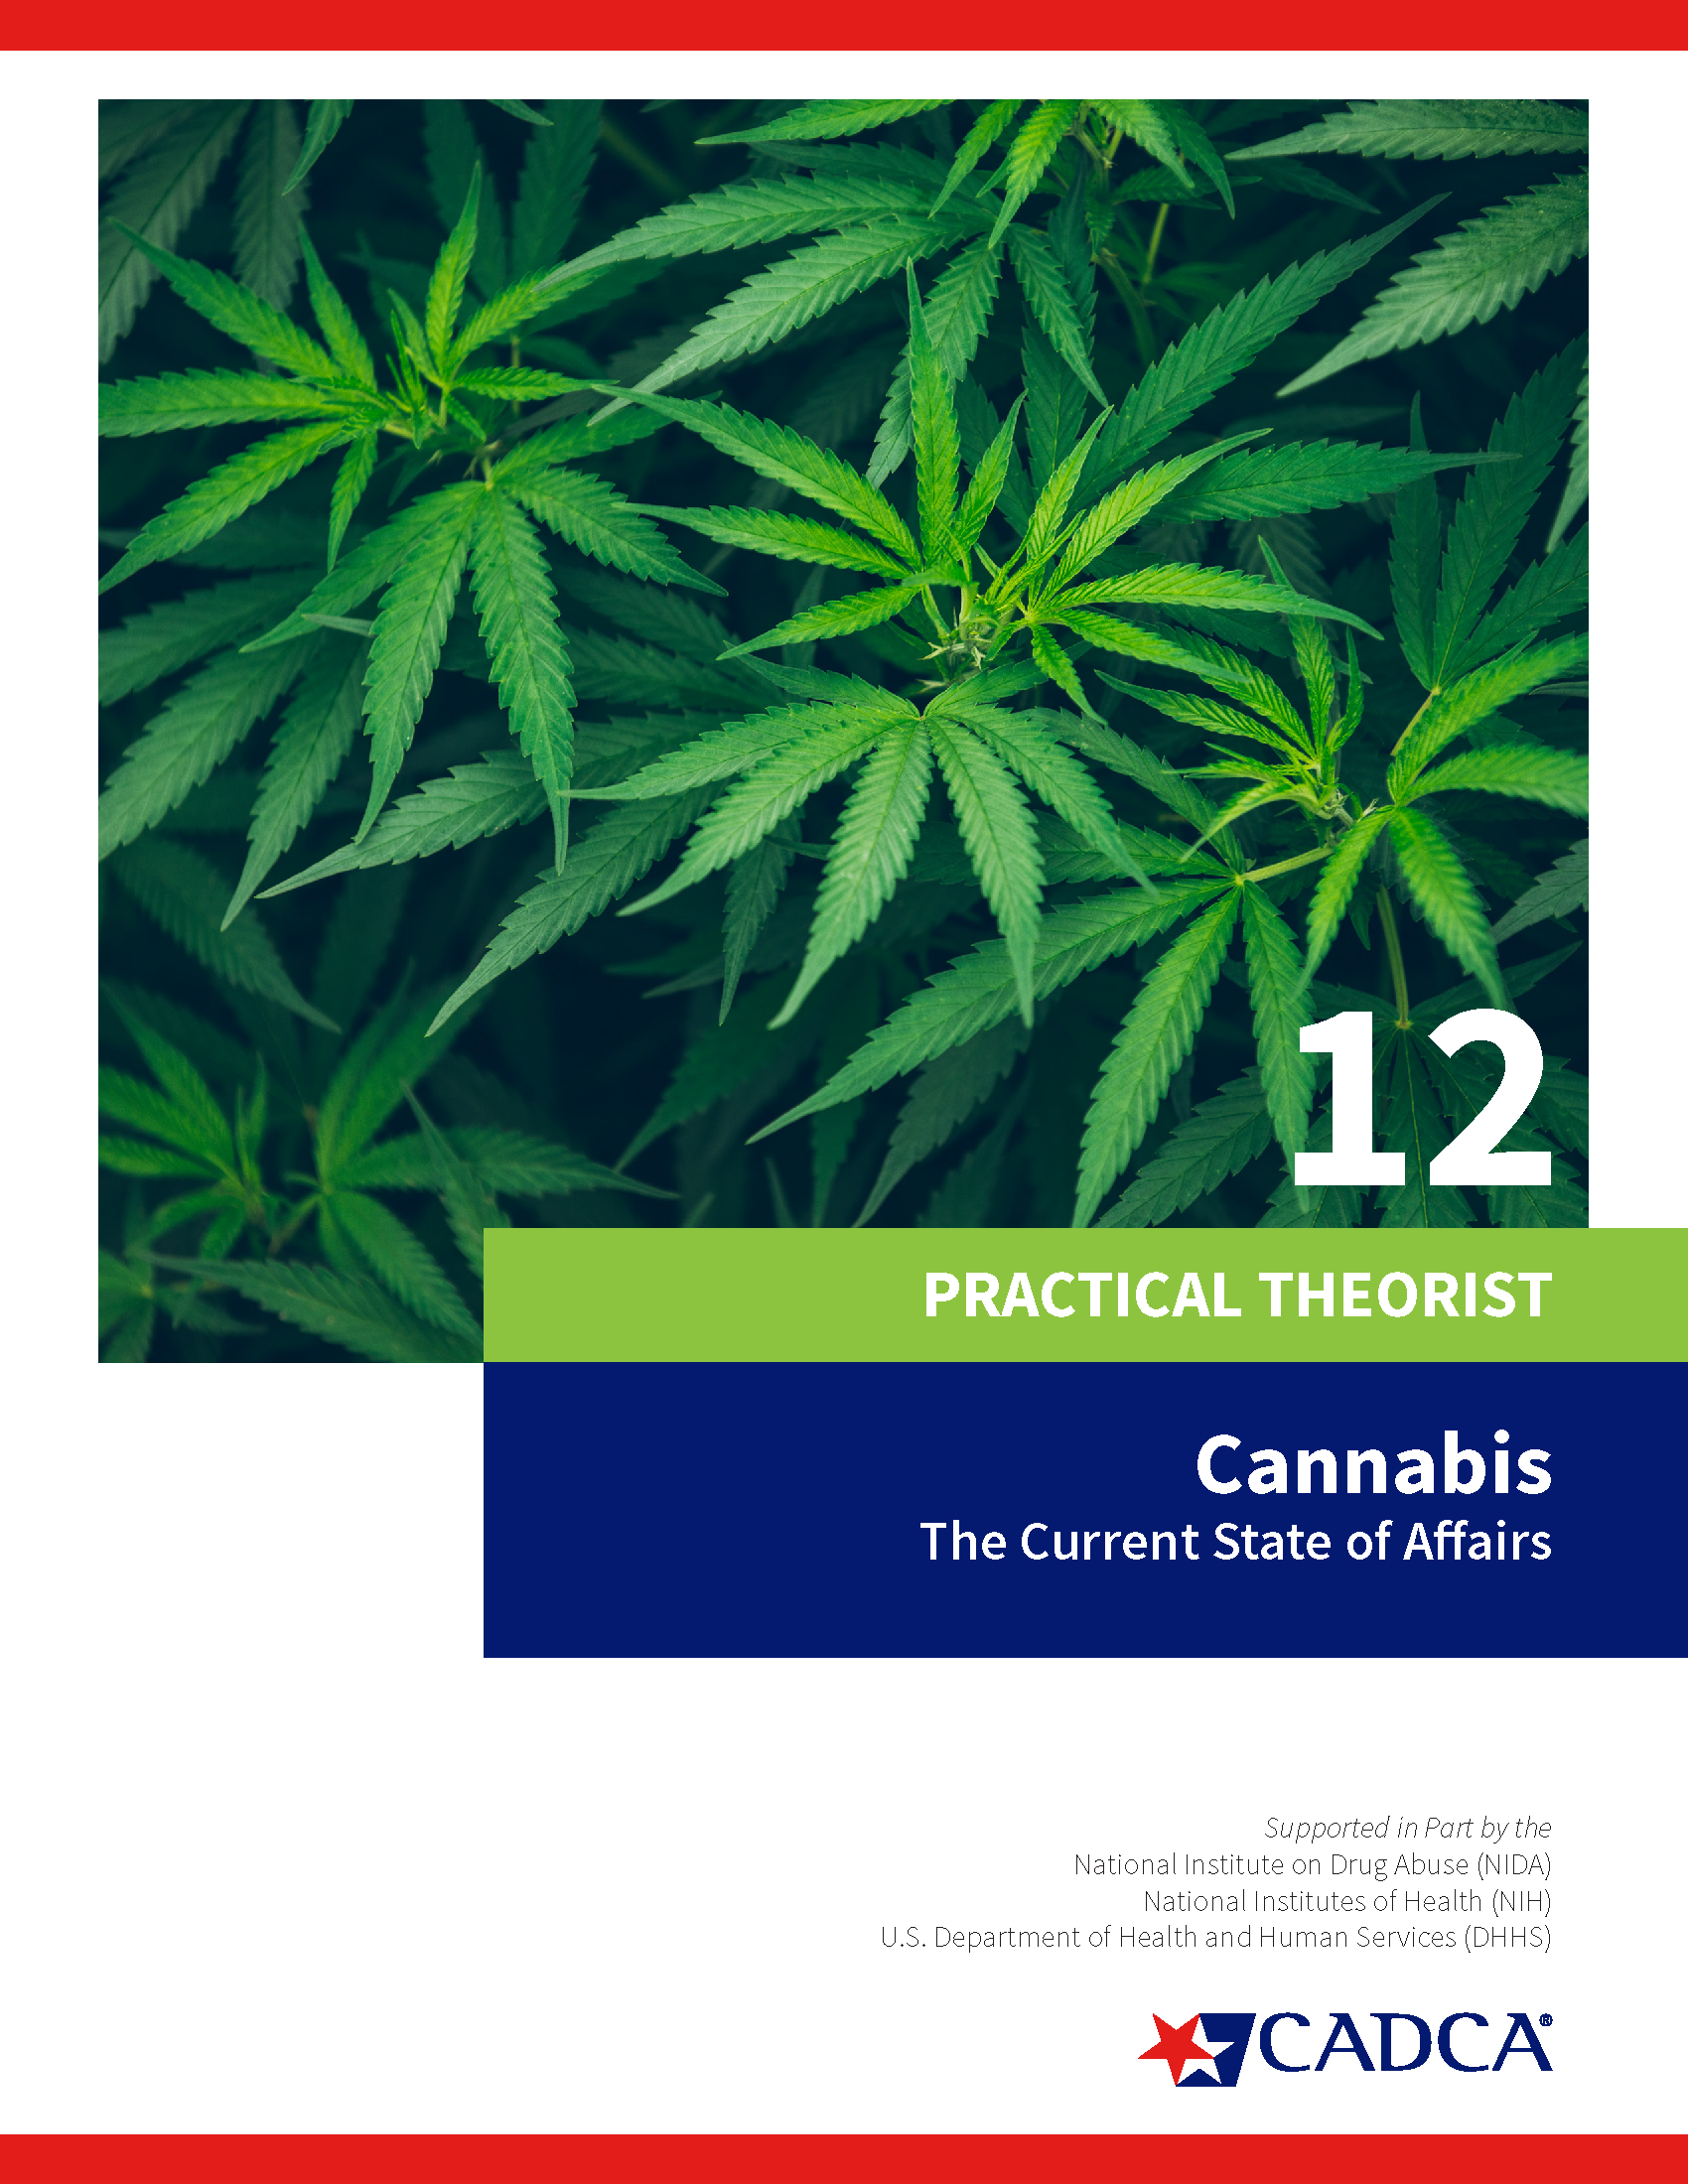 Practical Theorist 12 - Cannabis, The Current State of Affairs - Download